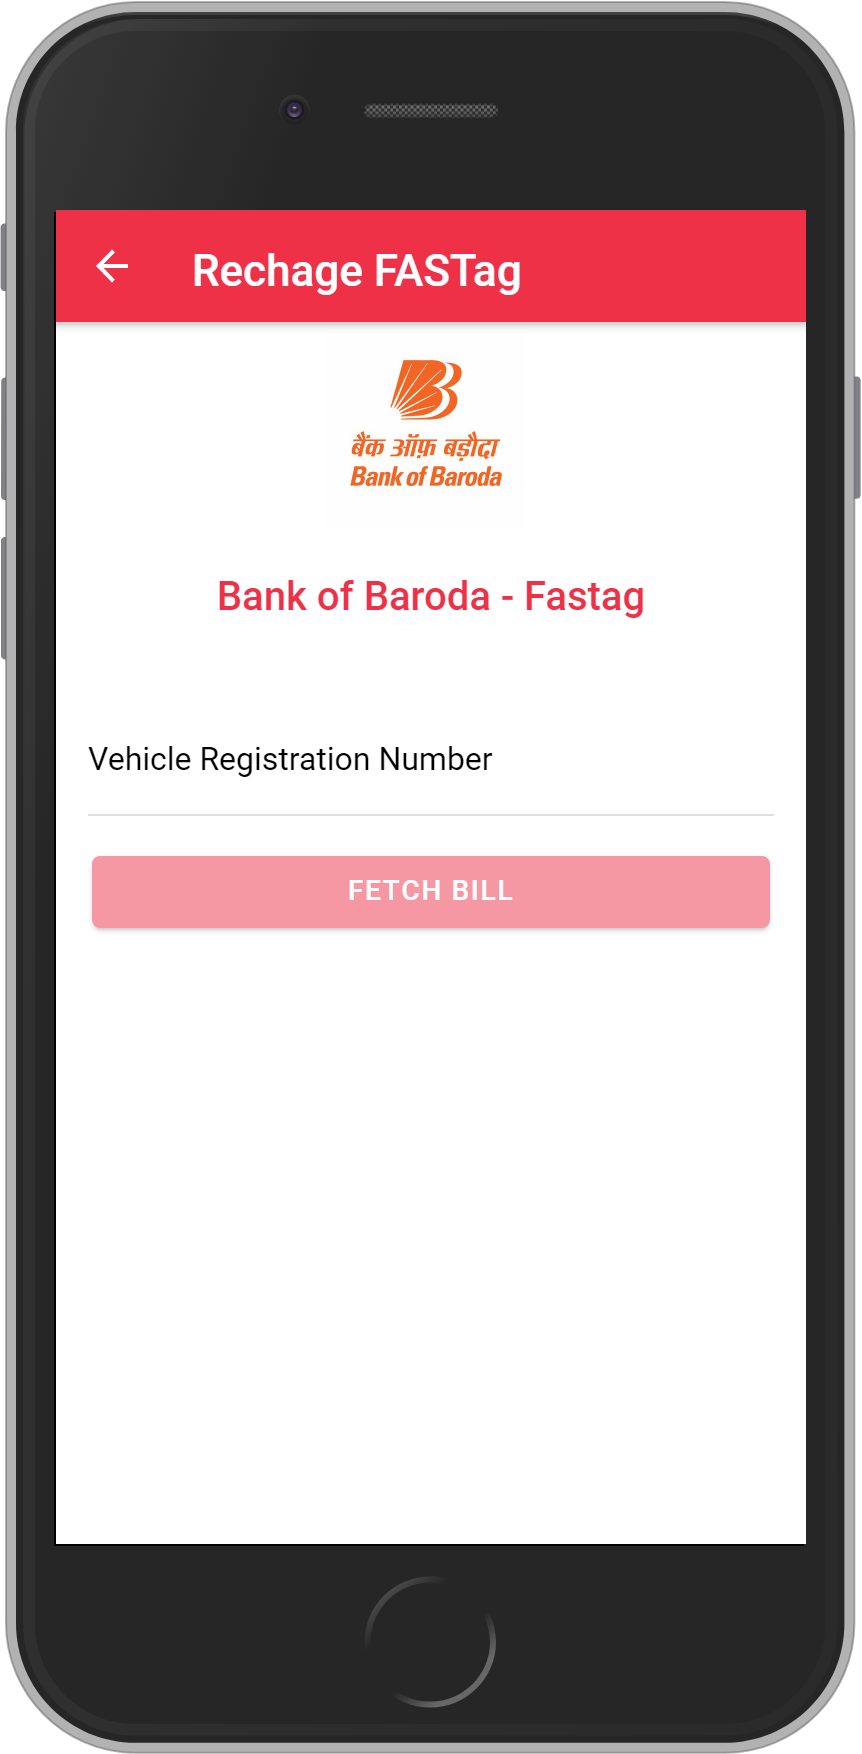 Get UNLIMITED <b>0.1%</b> CASHBACK on Bank of Baroda – Fastag Recharge.